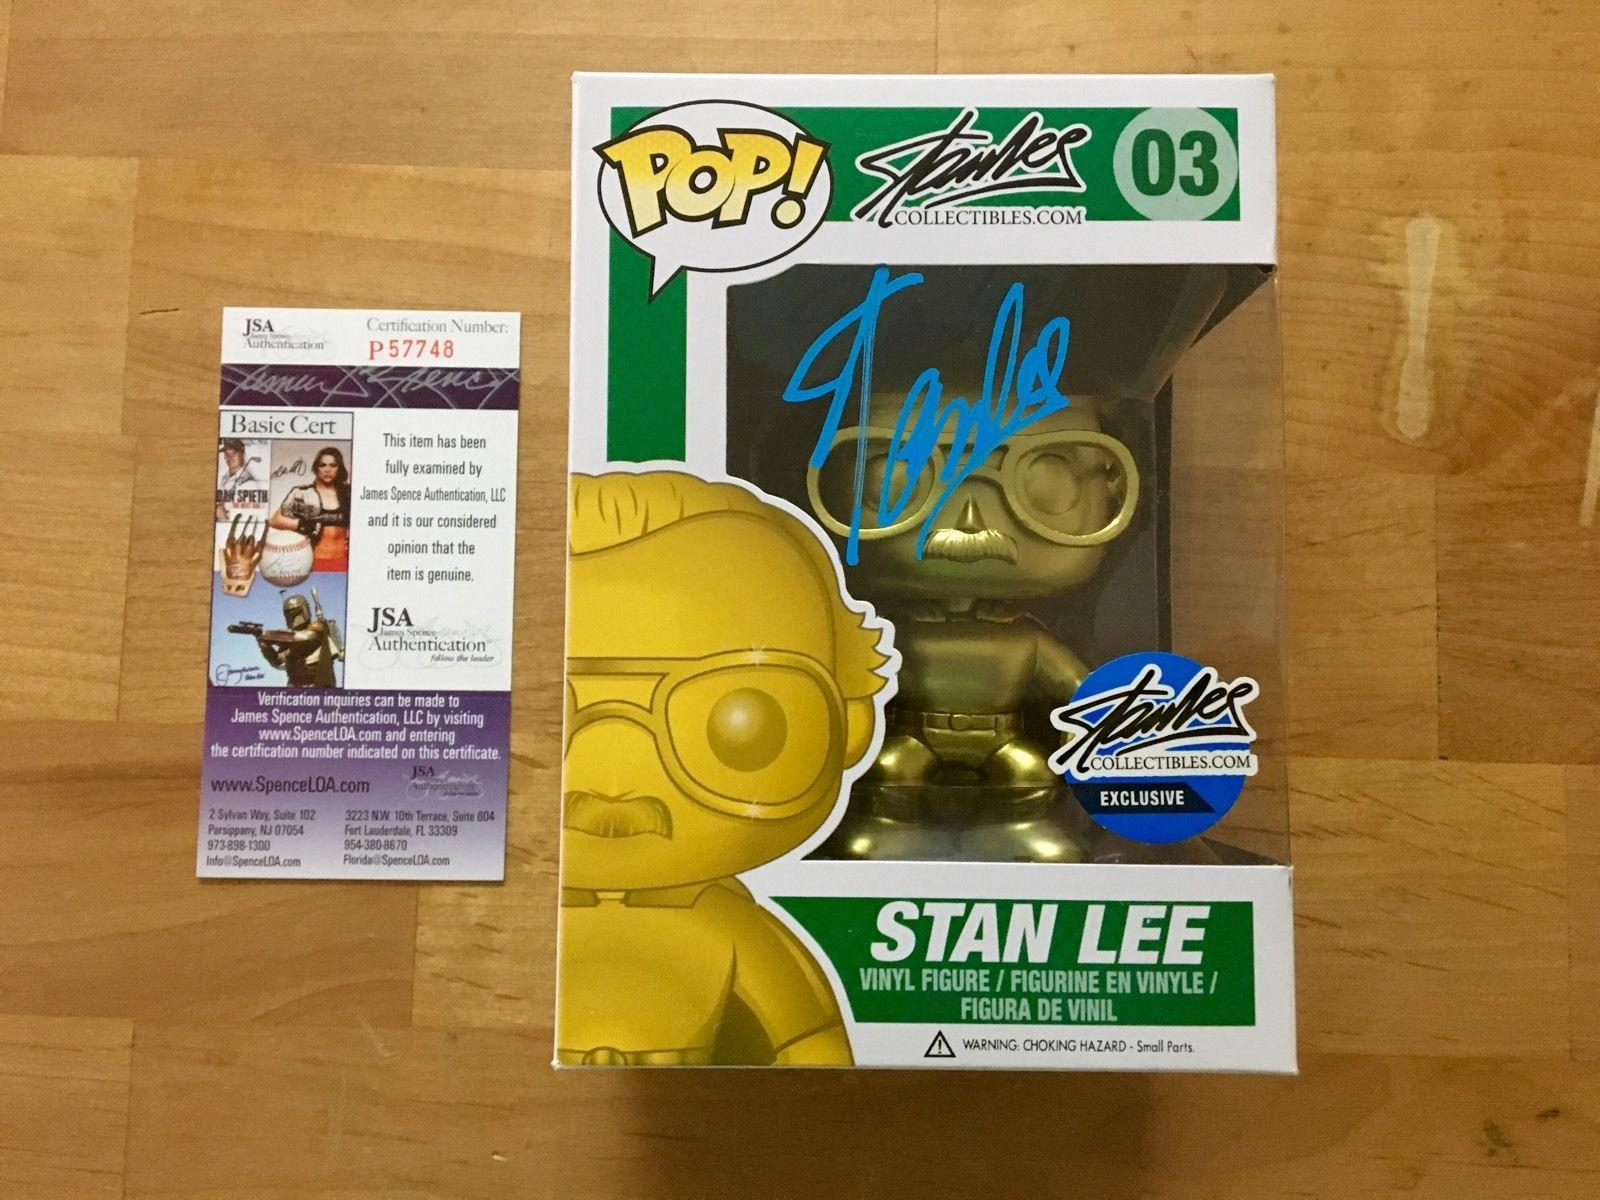 Stan Lee Signed Stan Lee Gold Funko Pop Figure Limited Edition JSA Coa